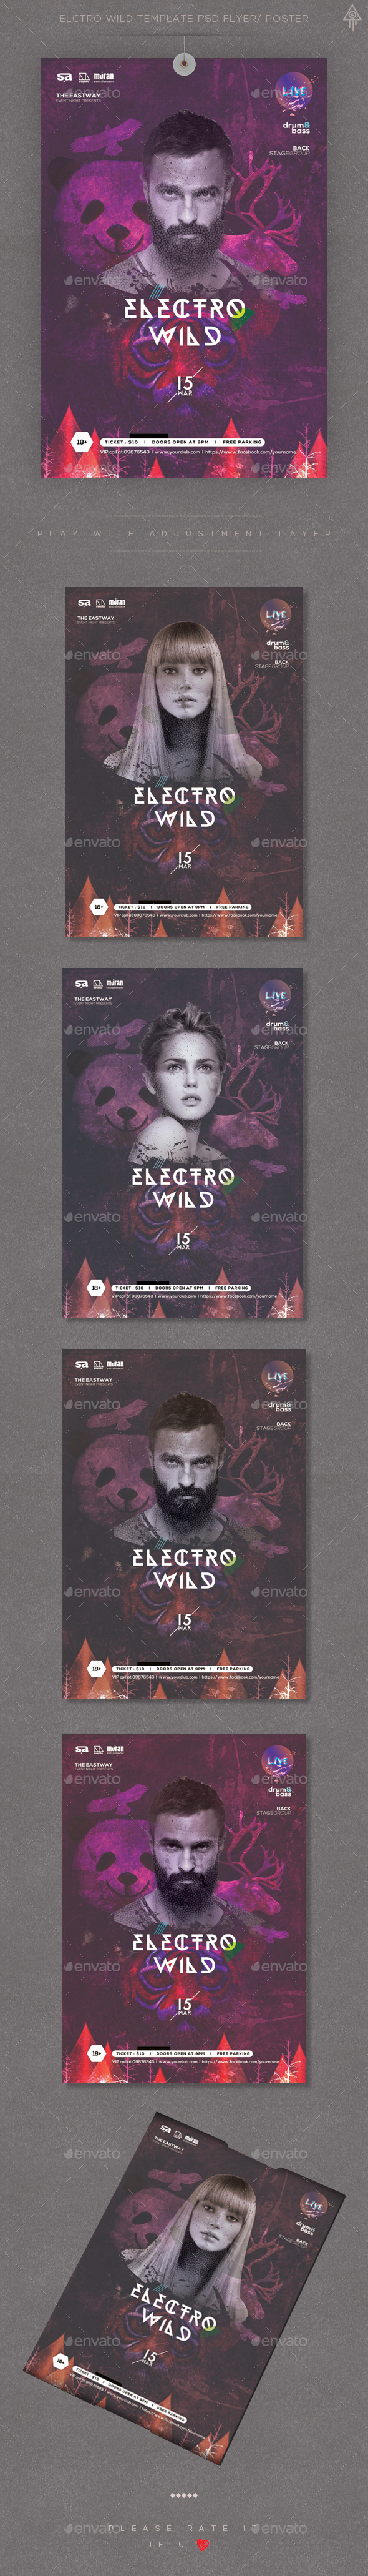 Electro Wild Template PSD Flyer/ Poster - Events Flyers